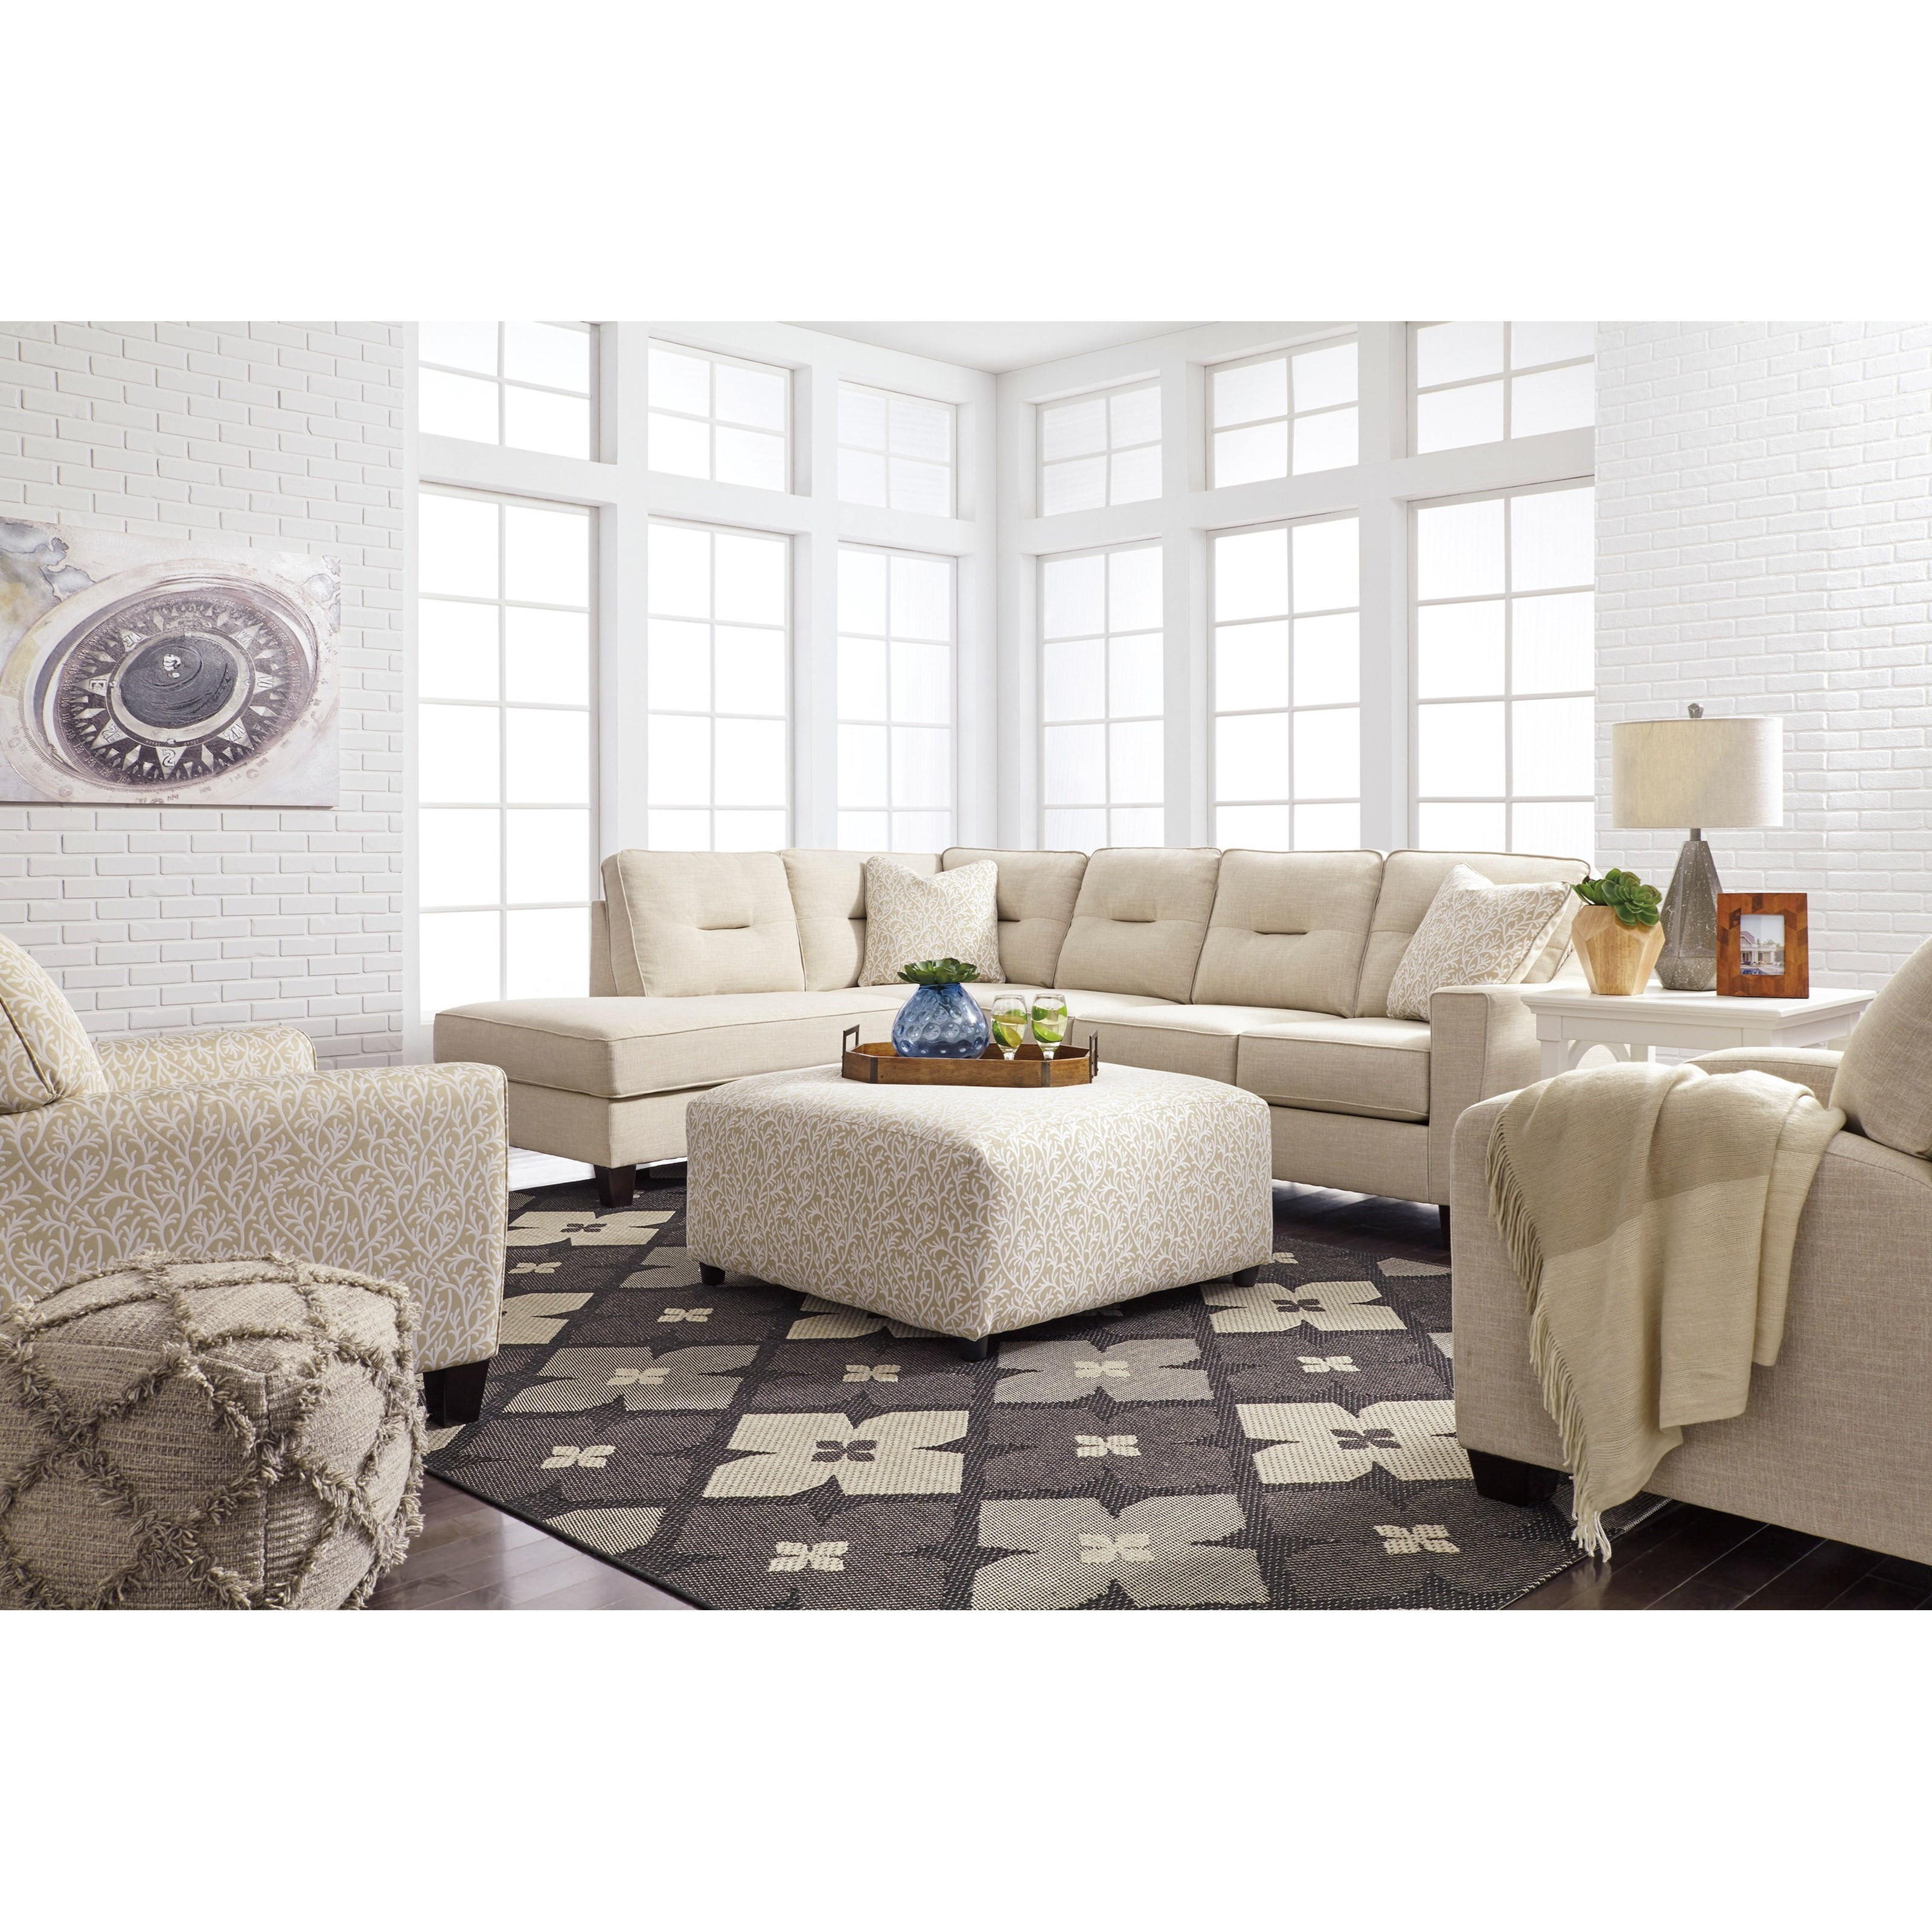 Benchcraft kirwin nuvella sectional with sleeper sofa for Divan vs chaise